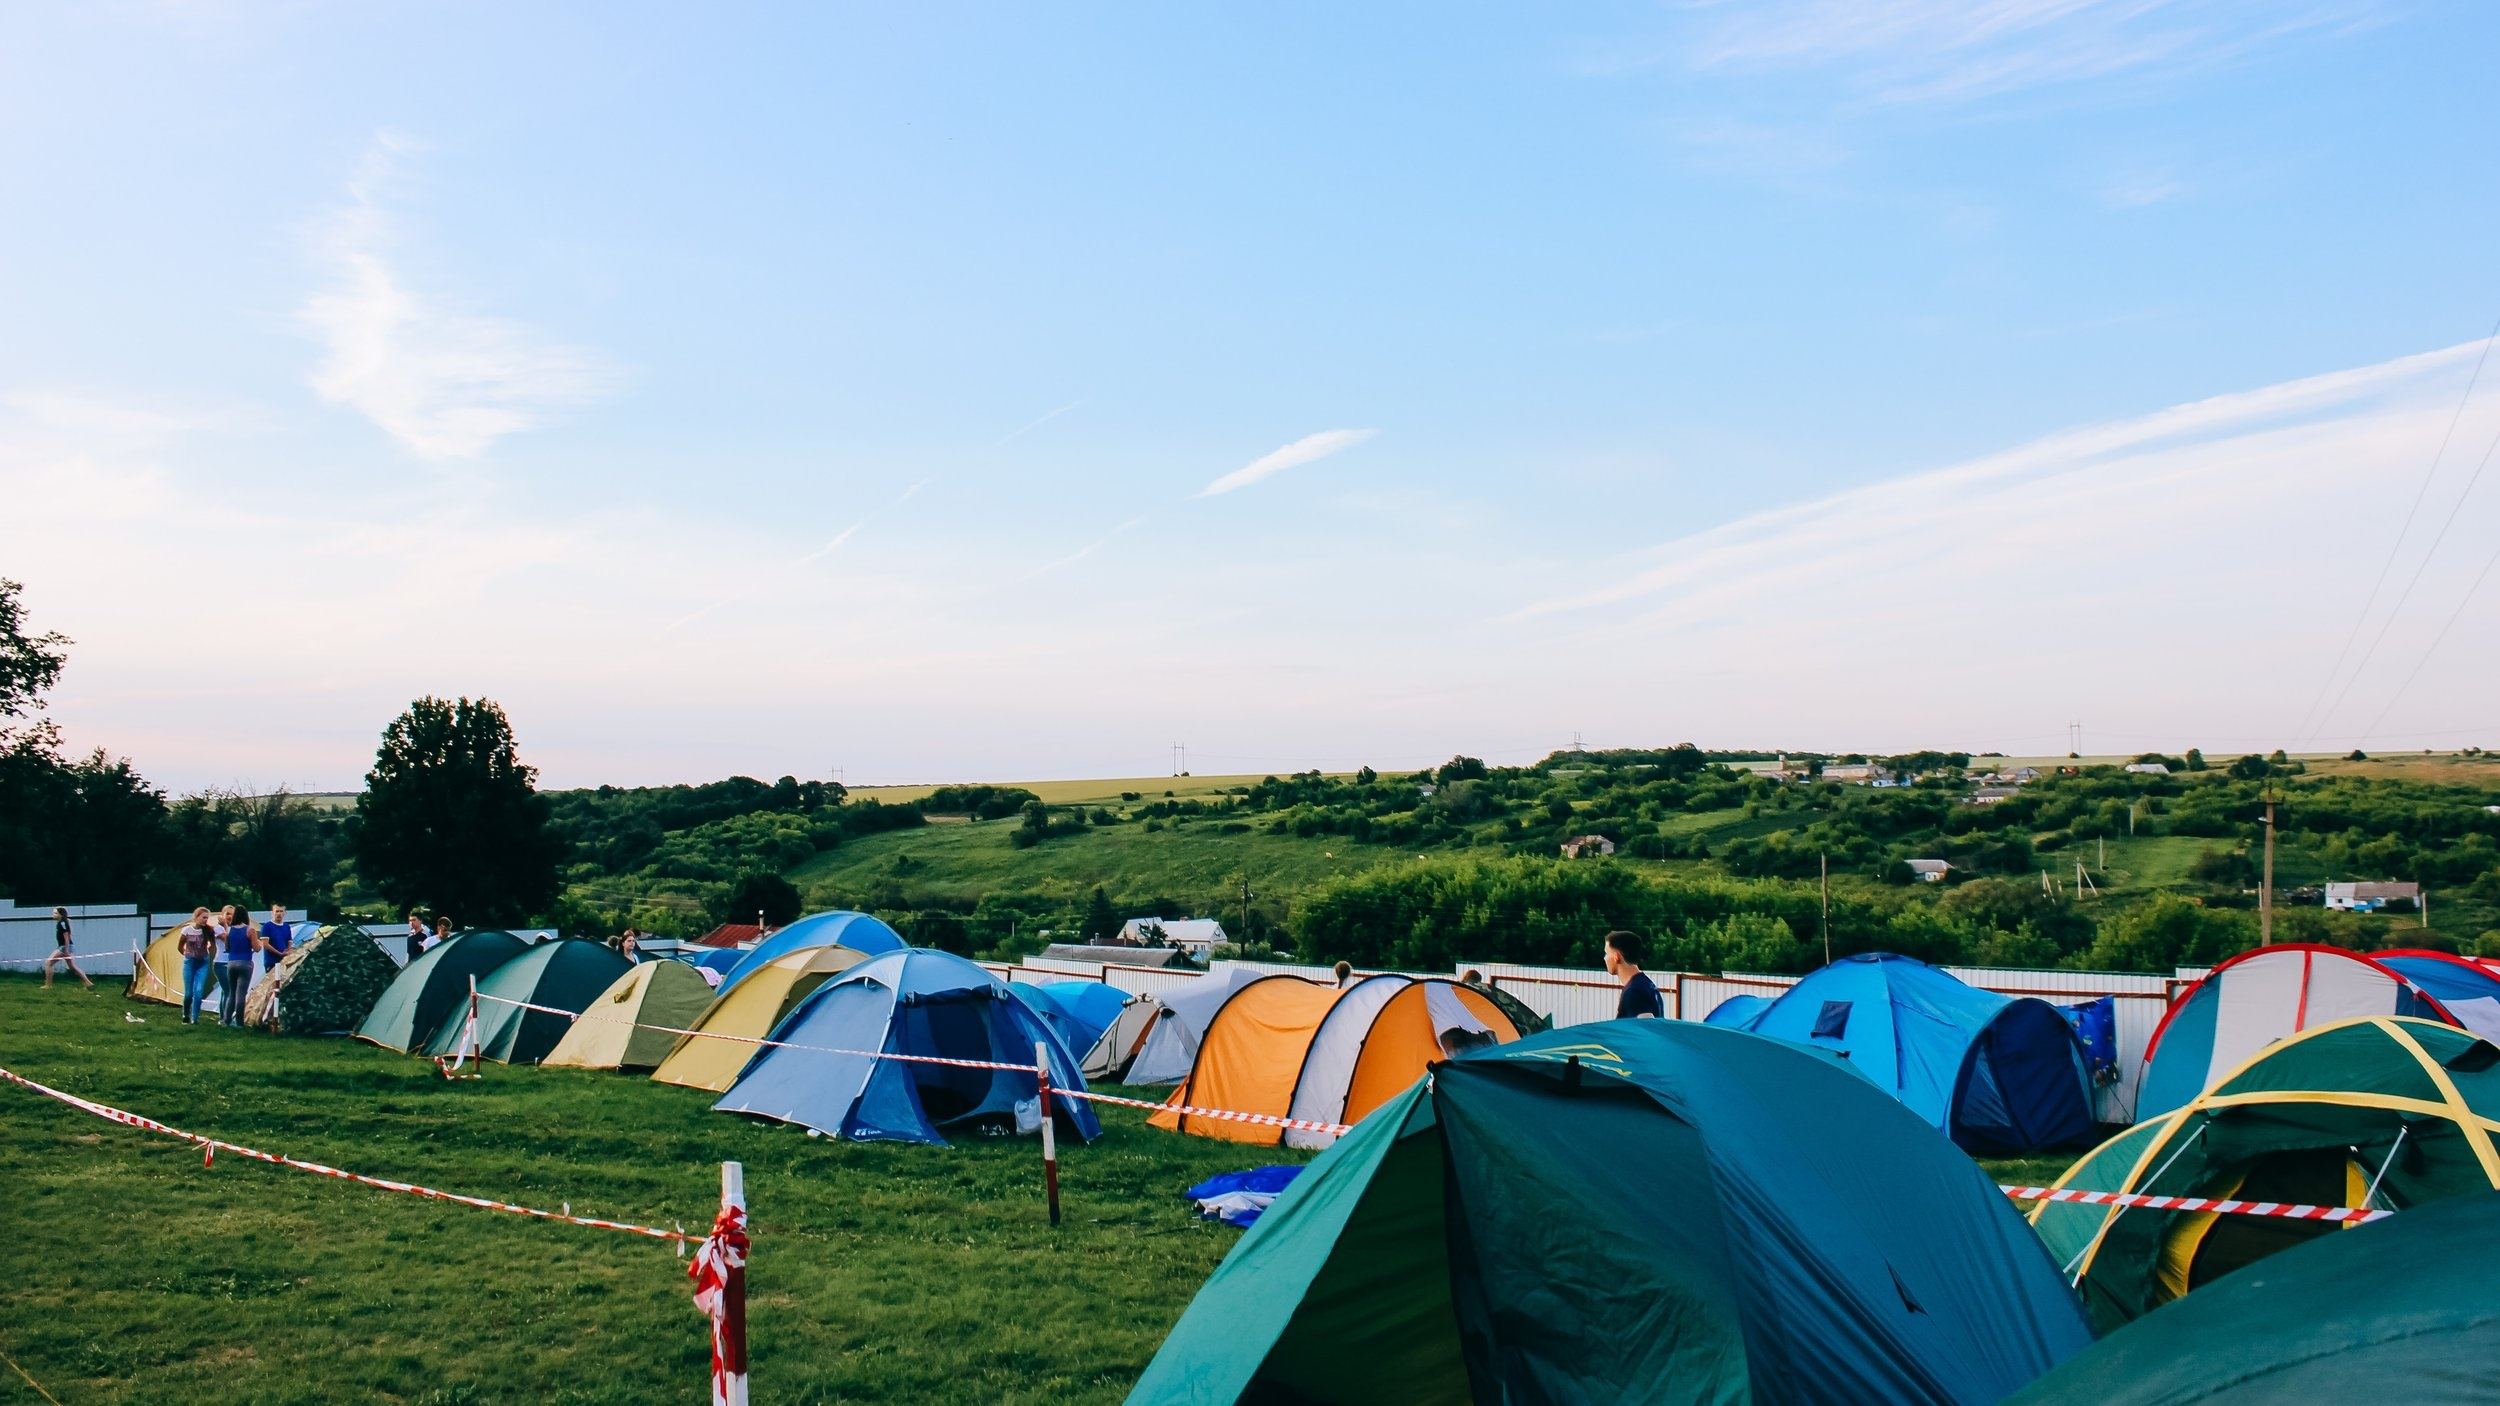 Festival scene with tents.jpg